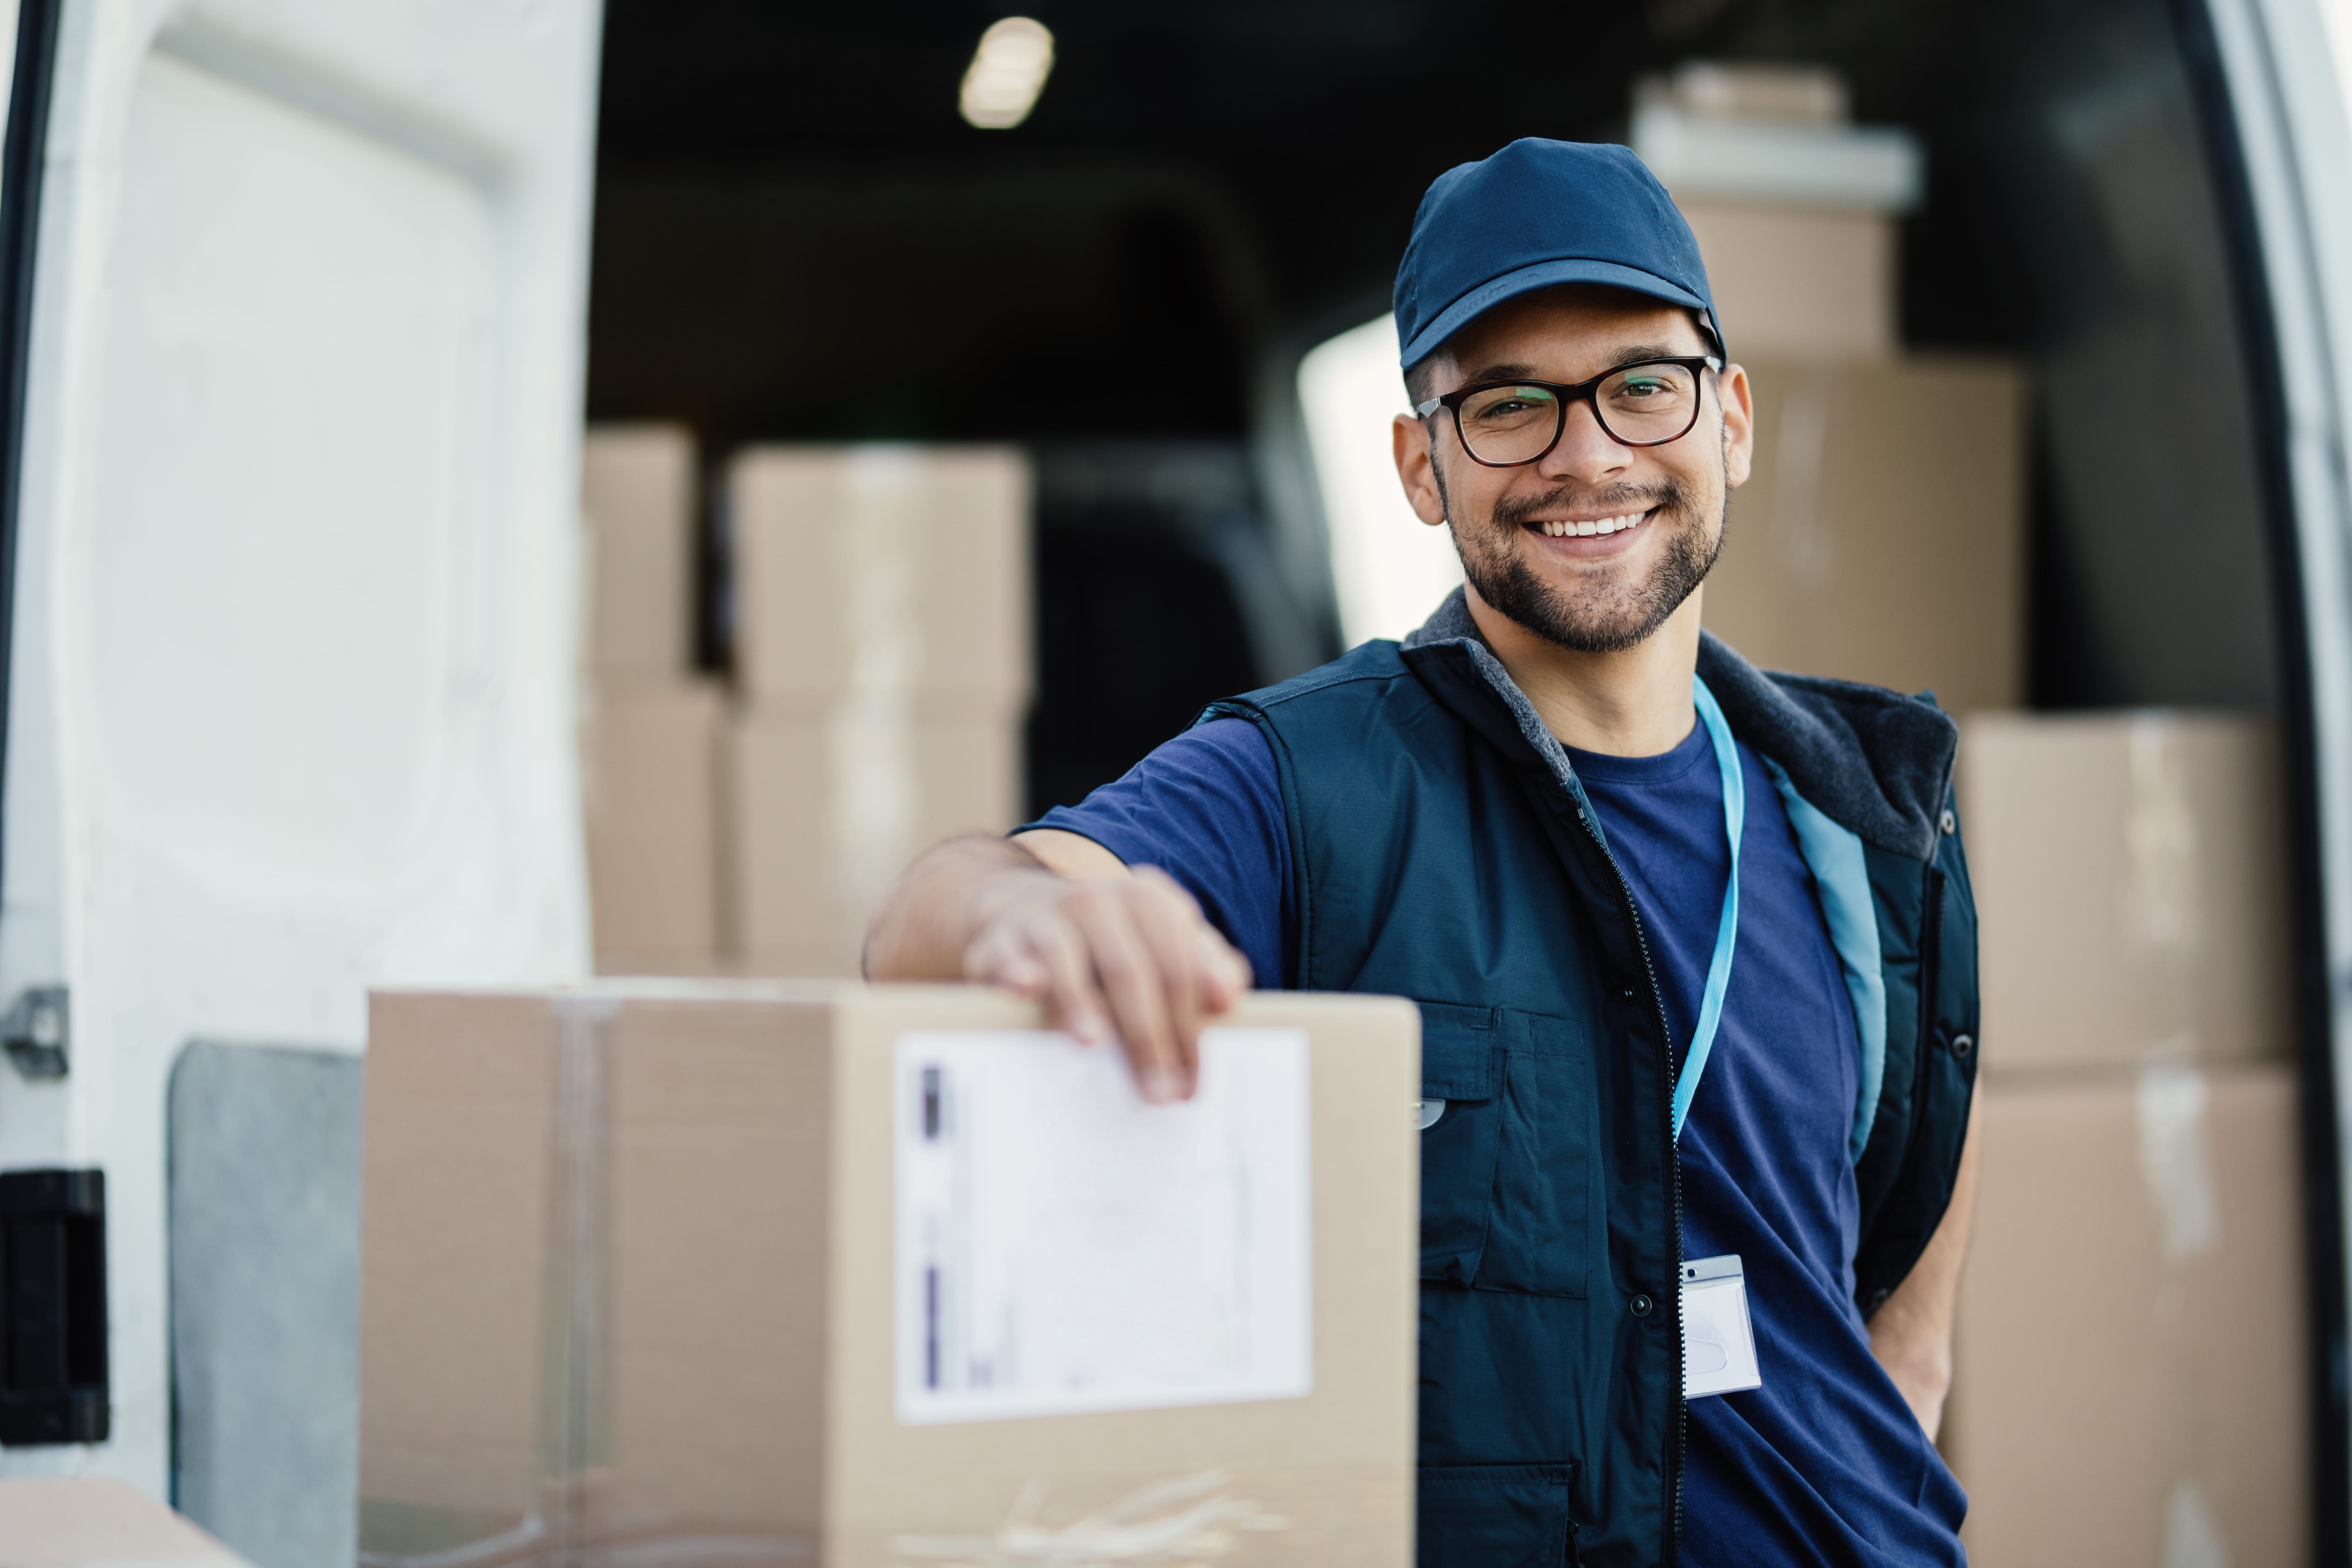 Delivery man smiling with boxes